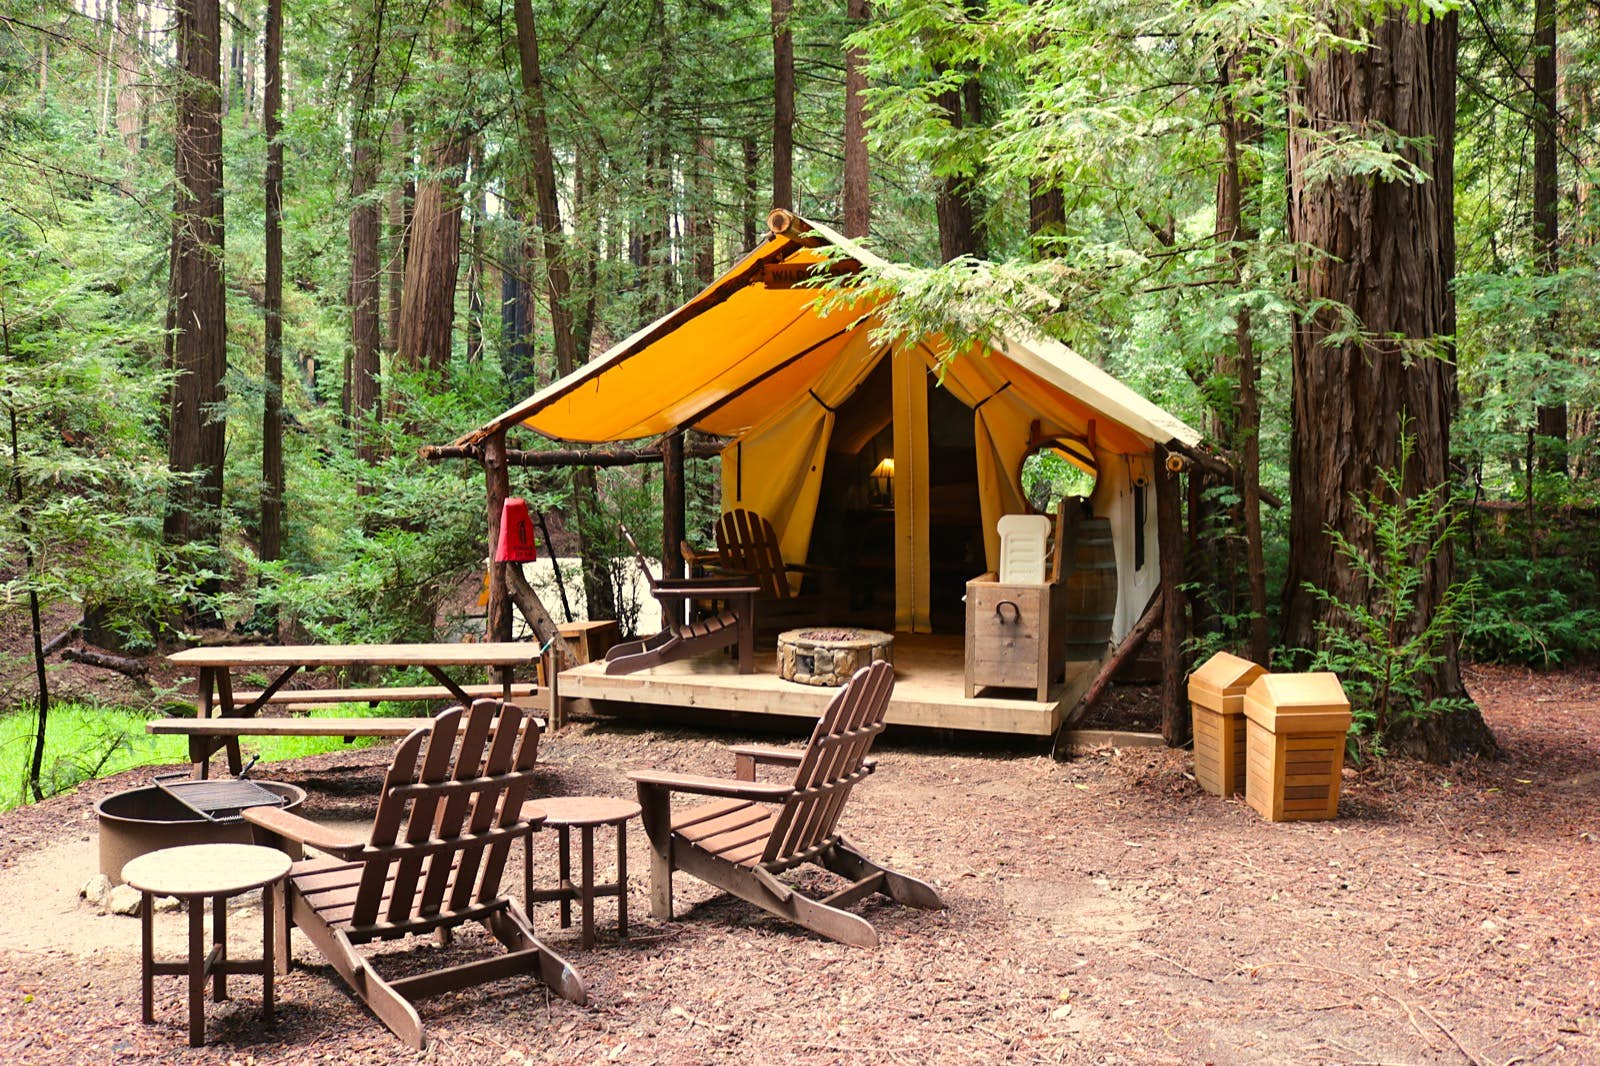 Adirondack chairs surround a fire pit with a safari-style tent in the background